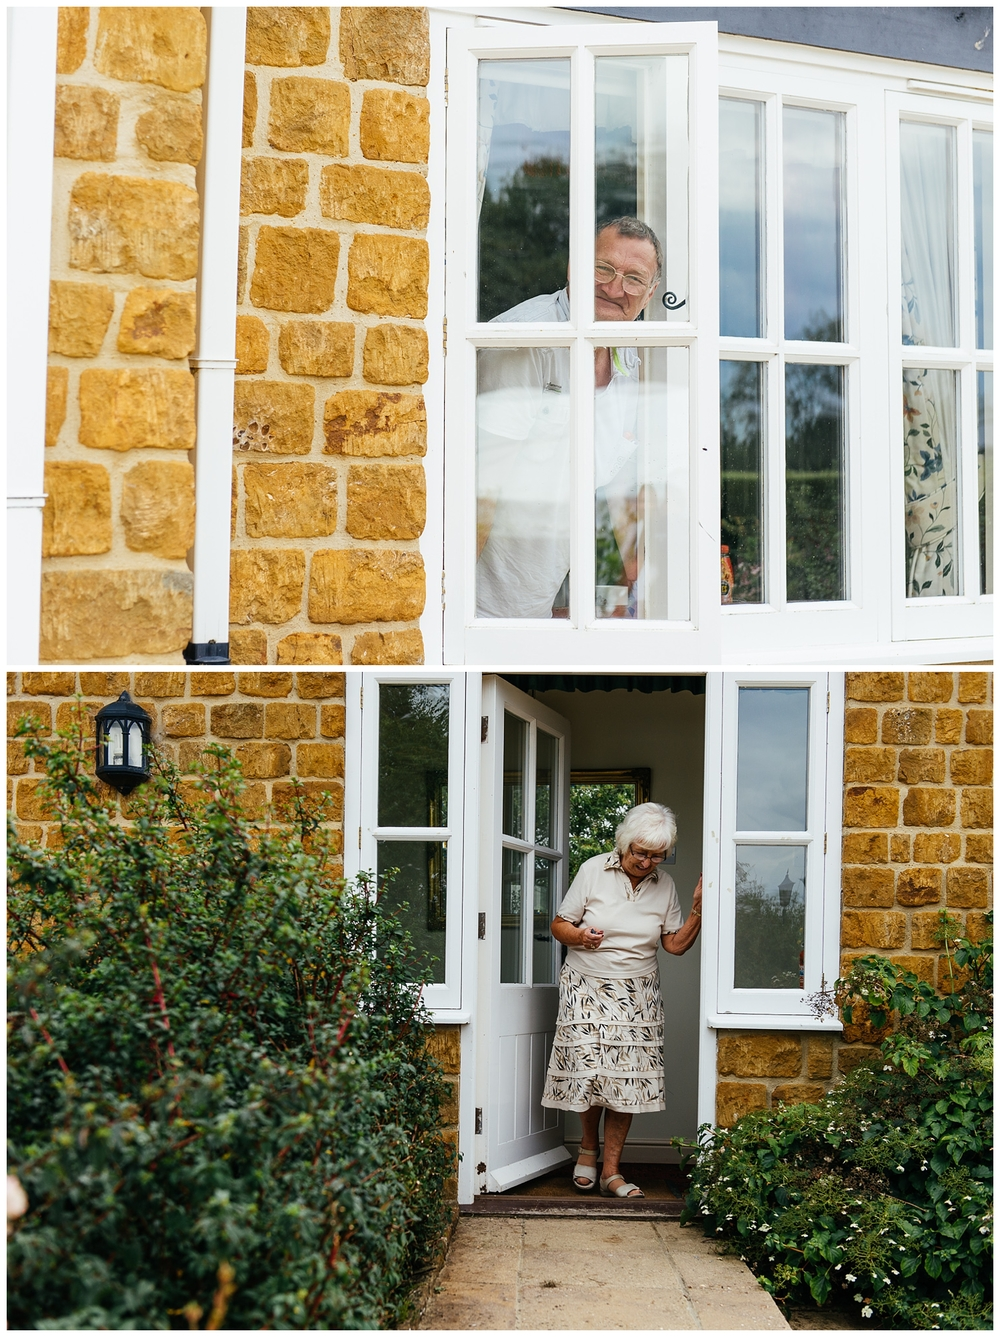 Nikki_Cooper_Photography_Janine&Andy_Wedding_Photos_Holmby_House_Oxfordshire_1018.jpg